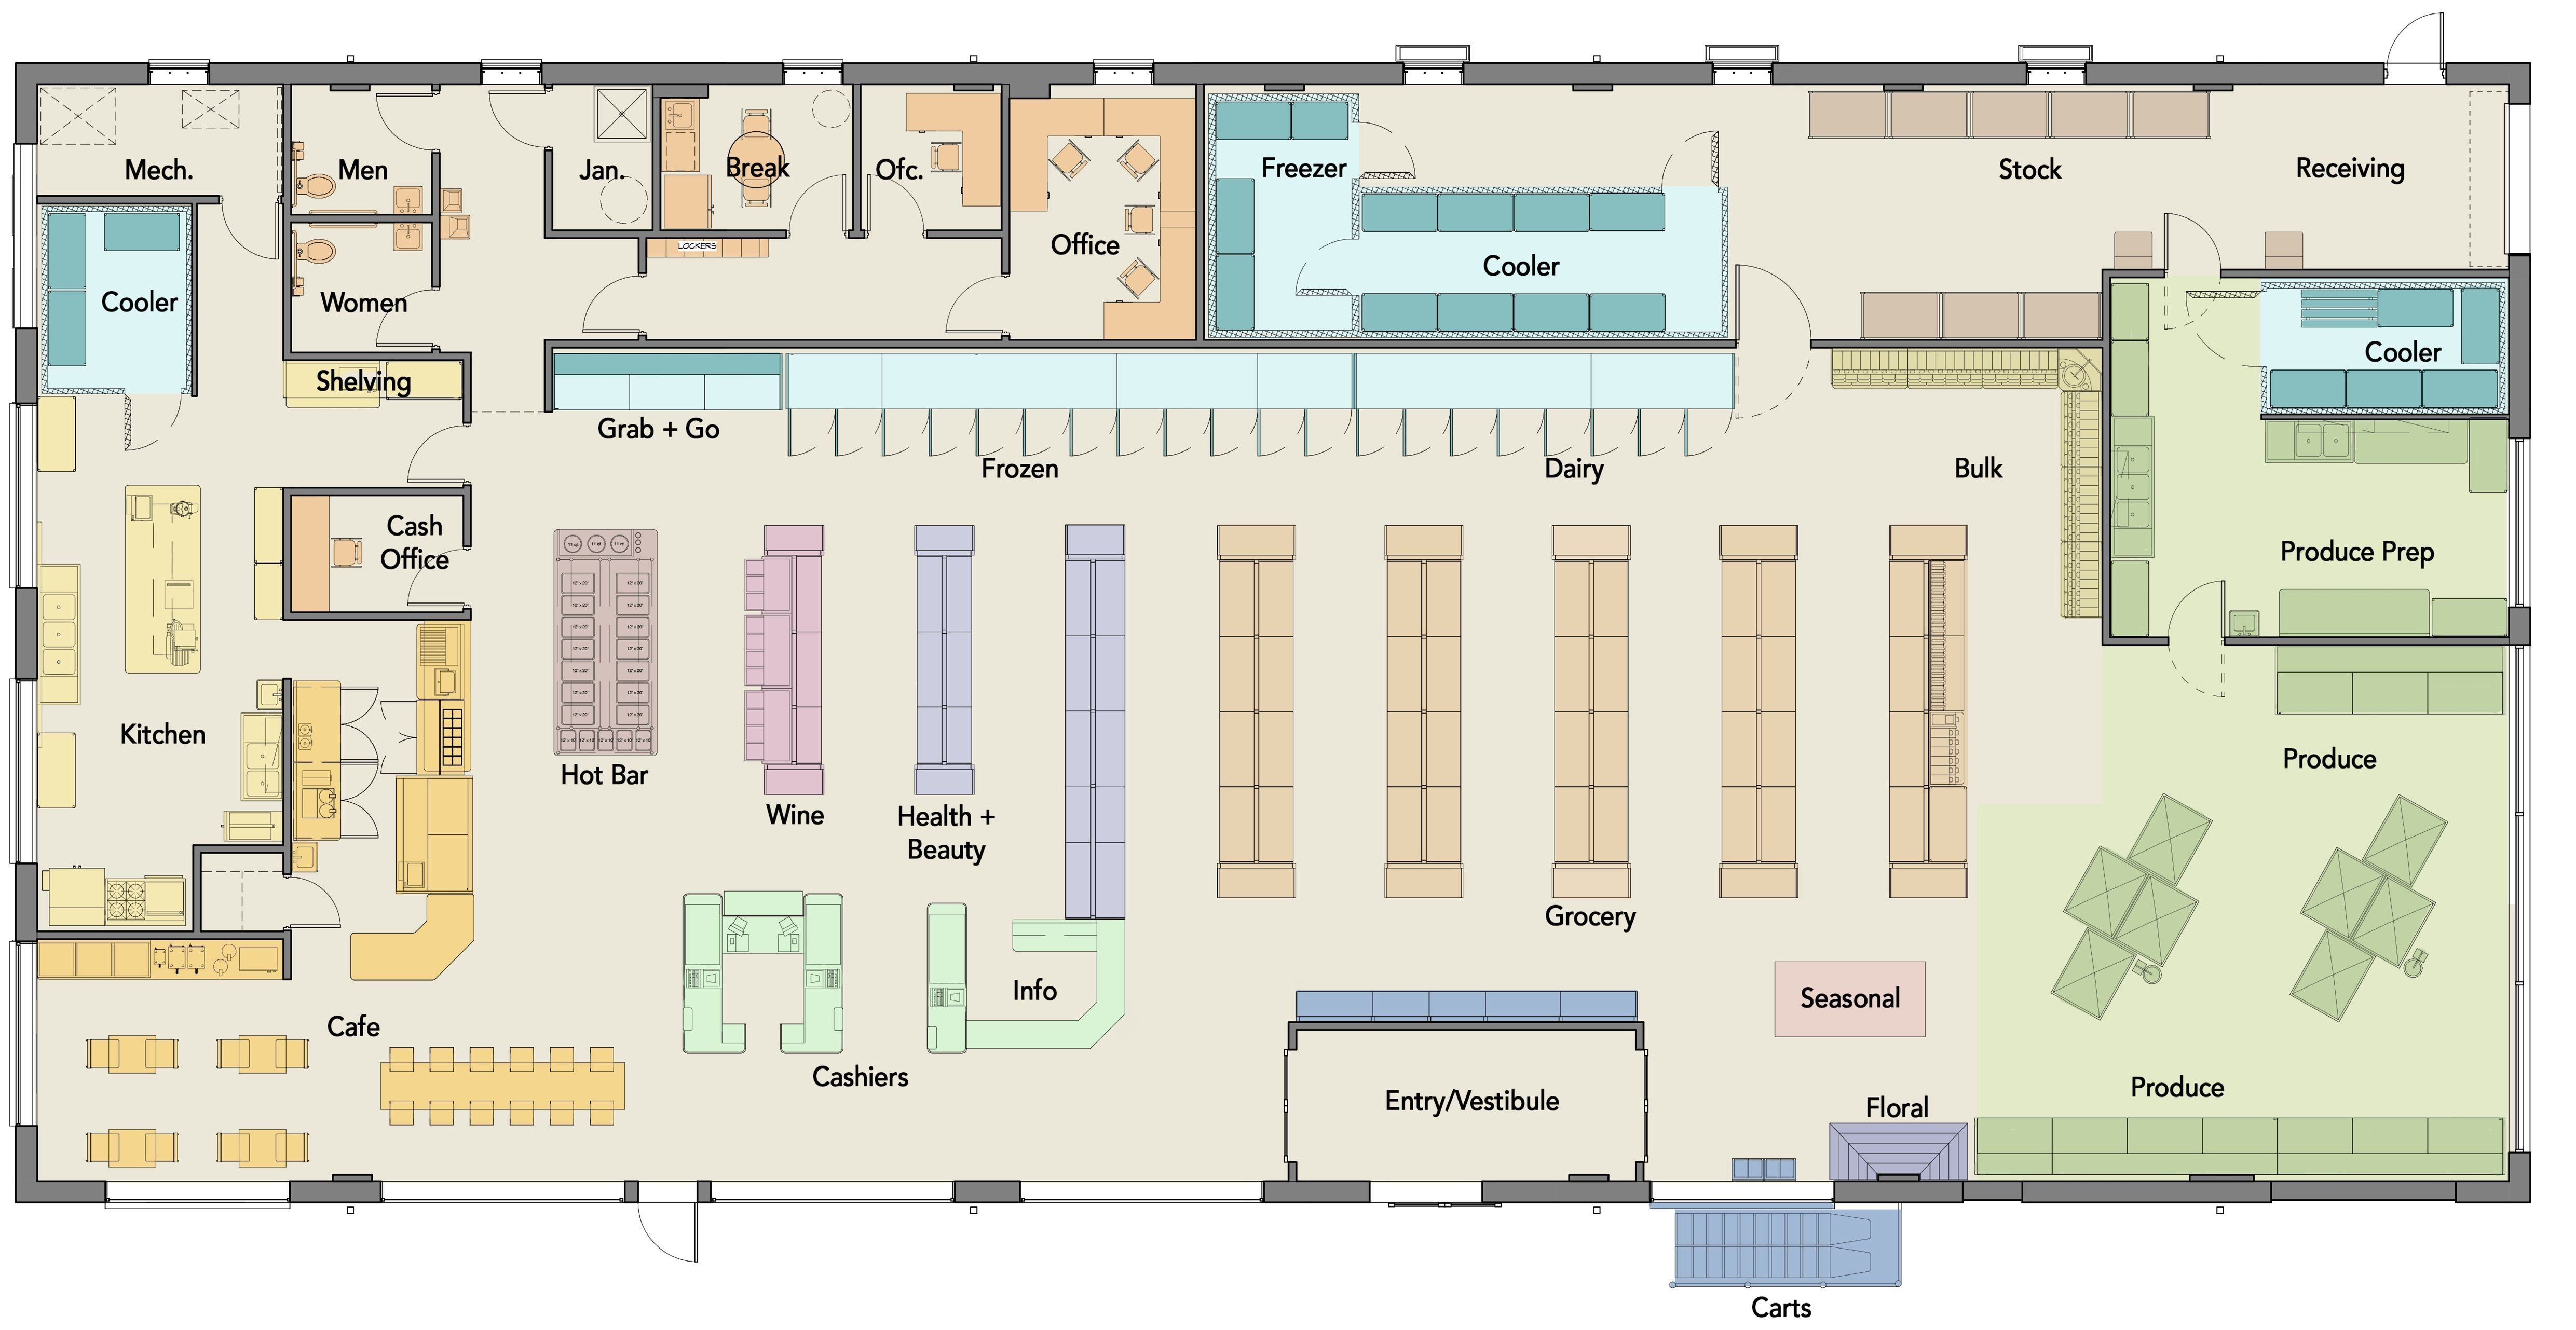 Grocery Store Floor Plan Inspirational Layout Of A Supermarket Google Search Supermarket Design Store Layout Grocery Store Design